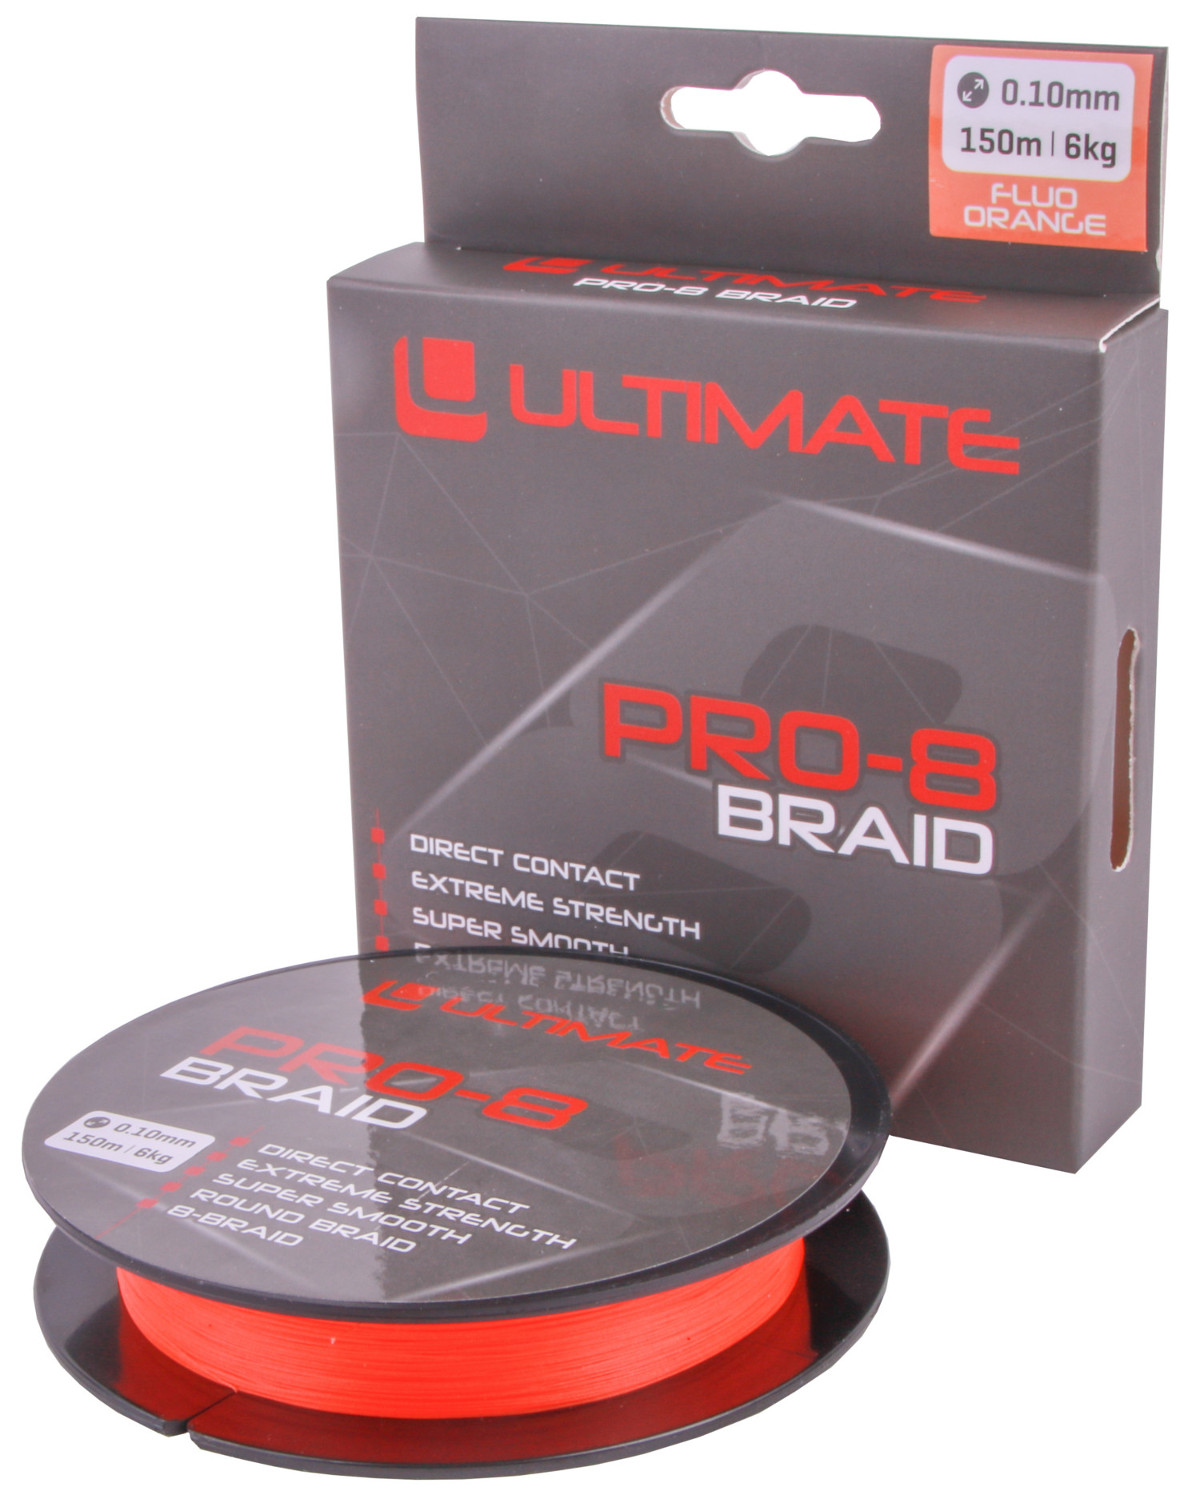 Ultimate Pro-8 Braid